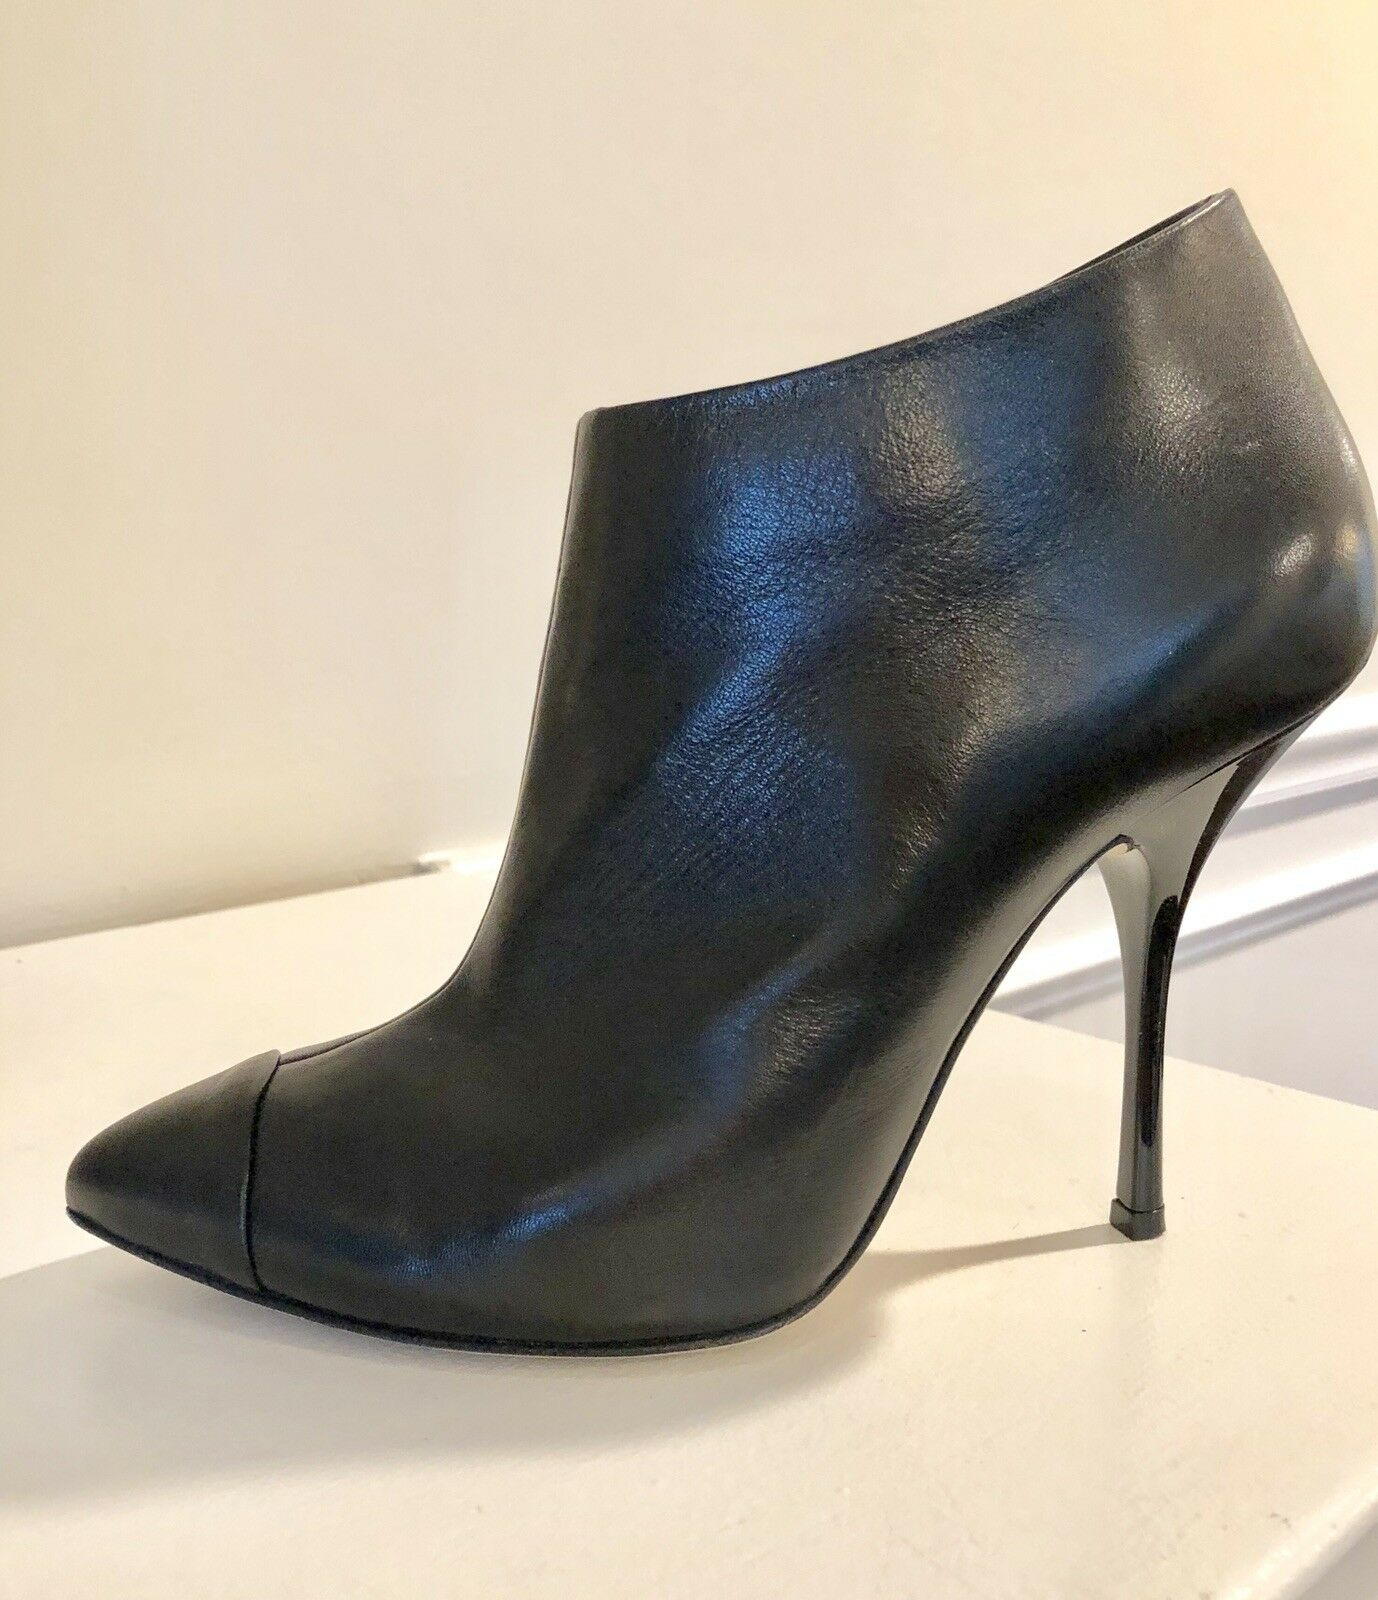 Giuseppe Zanotti Design Women's Leather Ankle Ankle Ankle Boots Heels shoes US 8-8.5 IT 39 590ac2